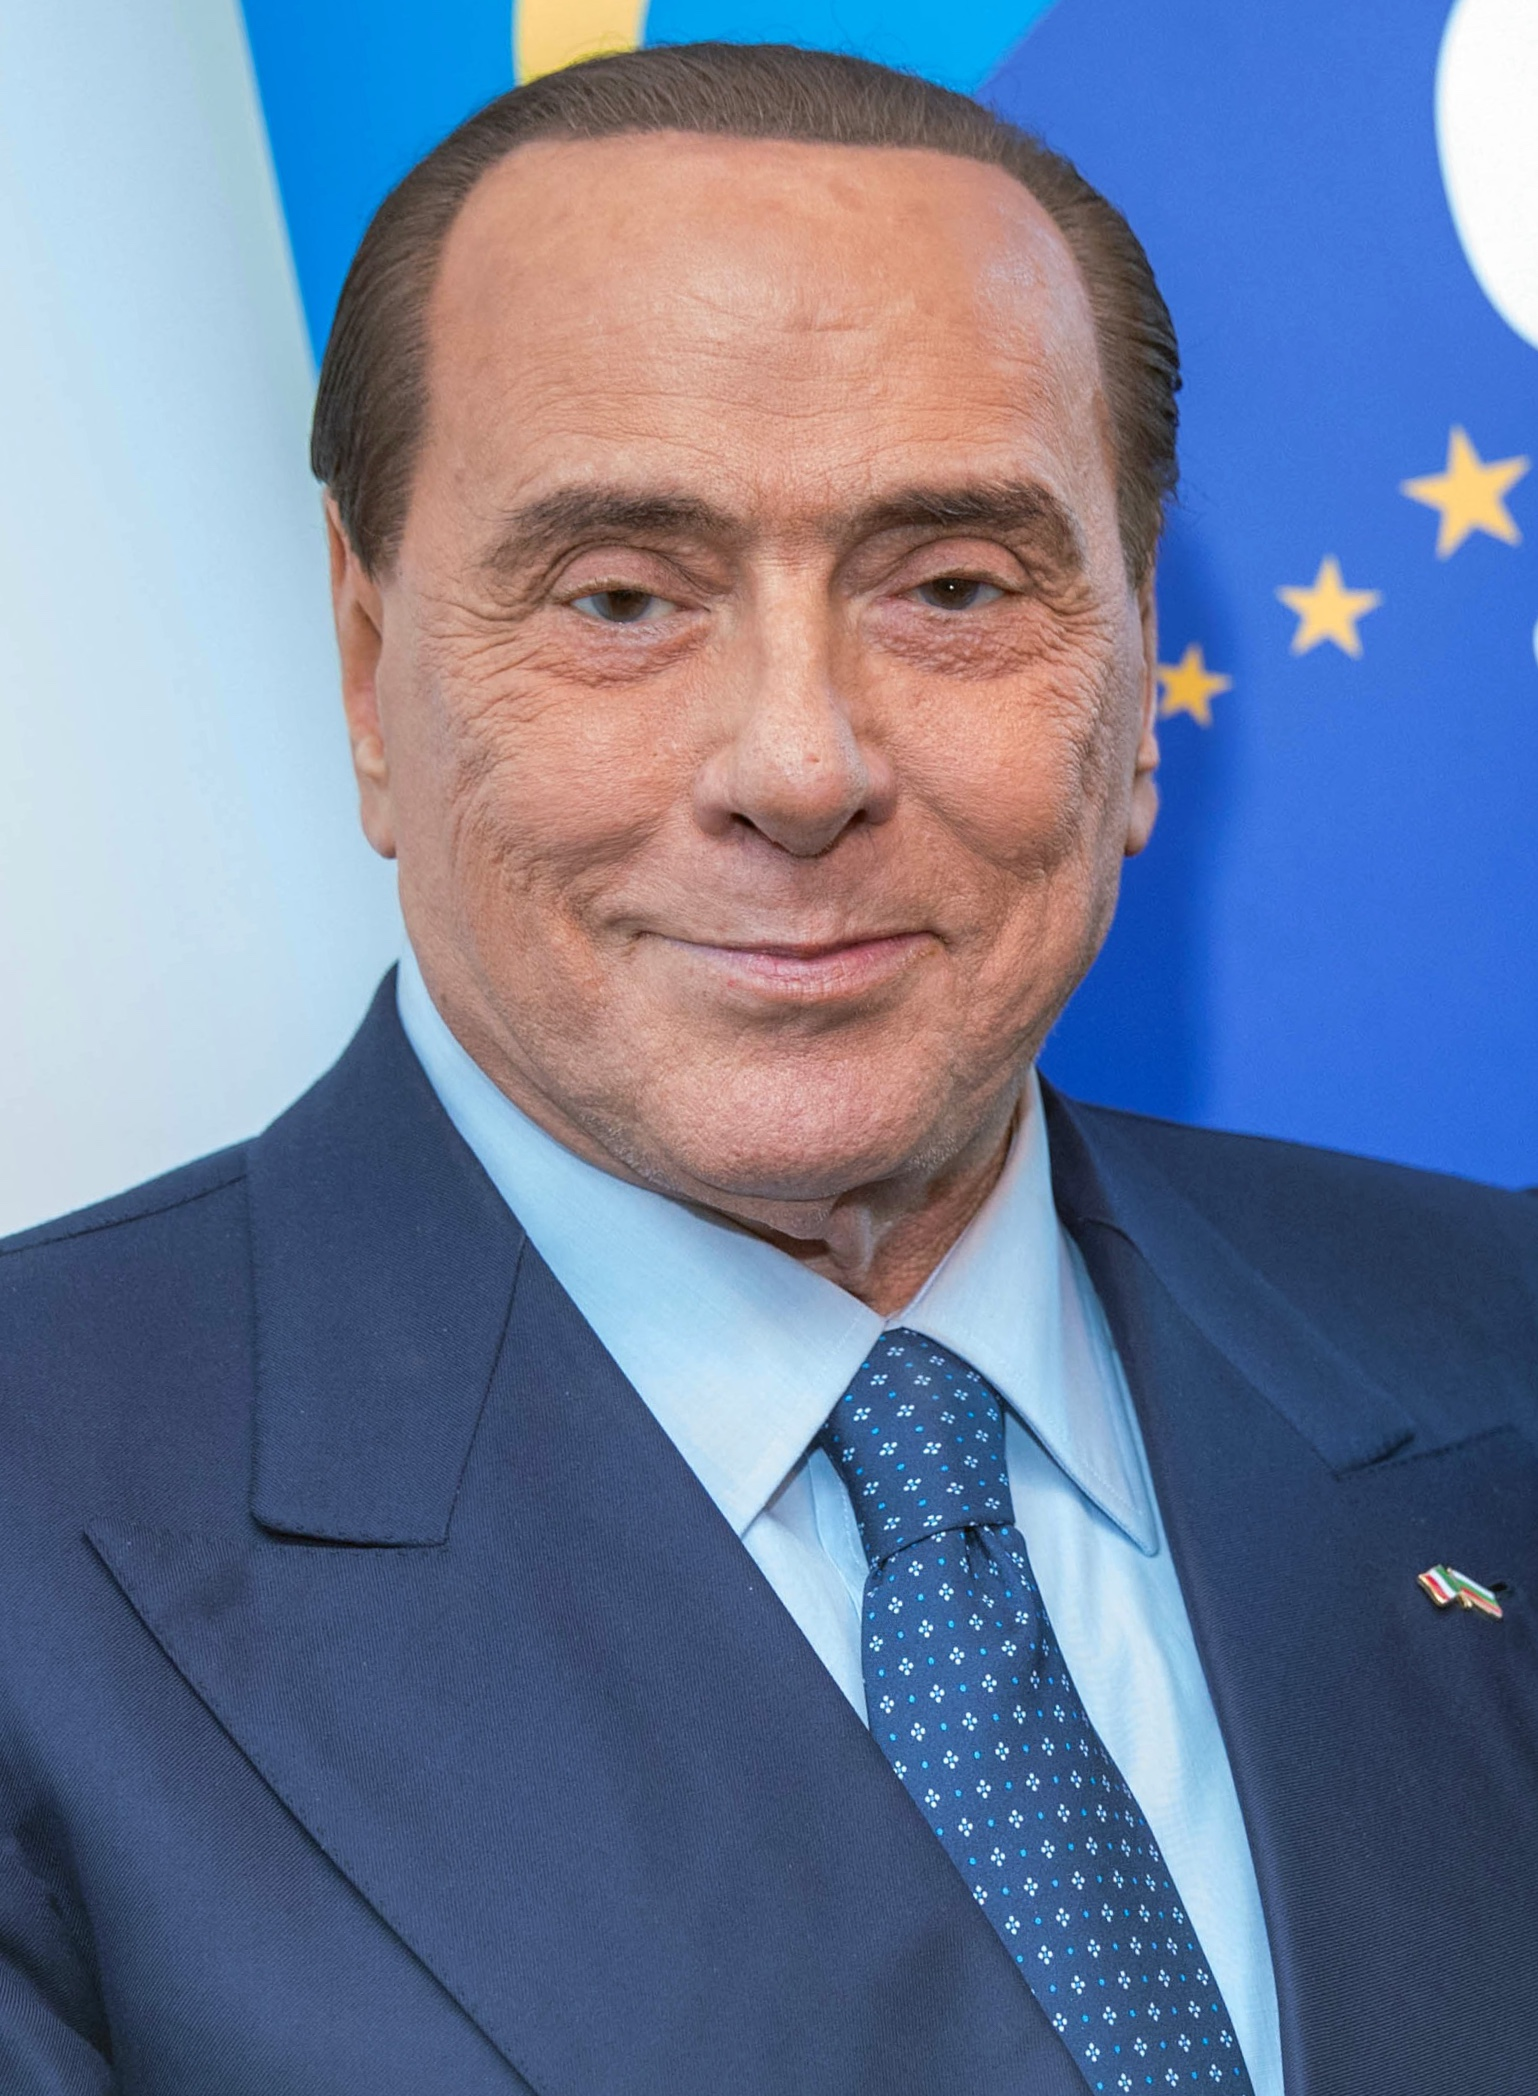 The 84-year old son of father Luigi Berlusconi  and mother Rosa Bossi Silvio Berlusconi in 2020 photo. Silvio Berlusconi earned a  million dollar salary - leaving the net worth at 850 million in 2020